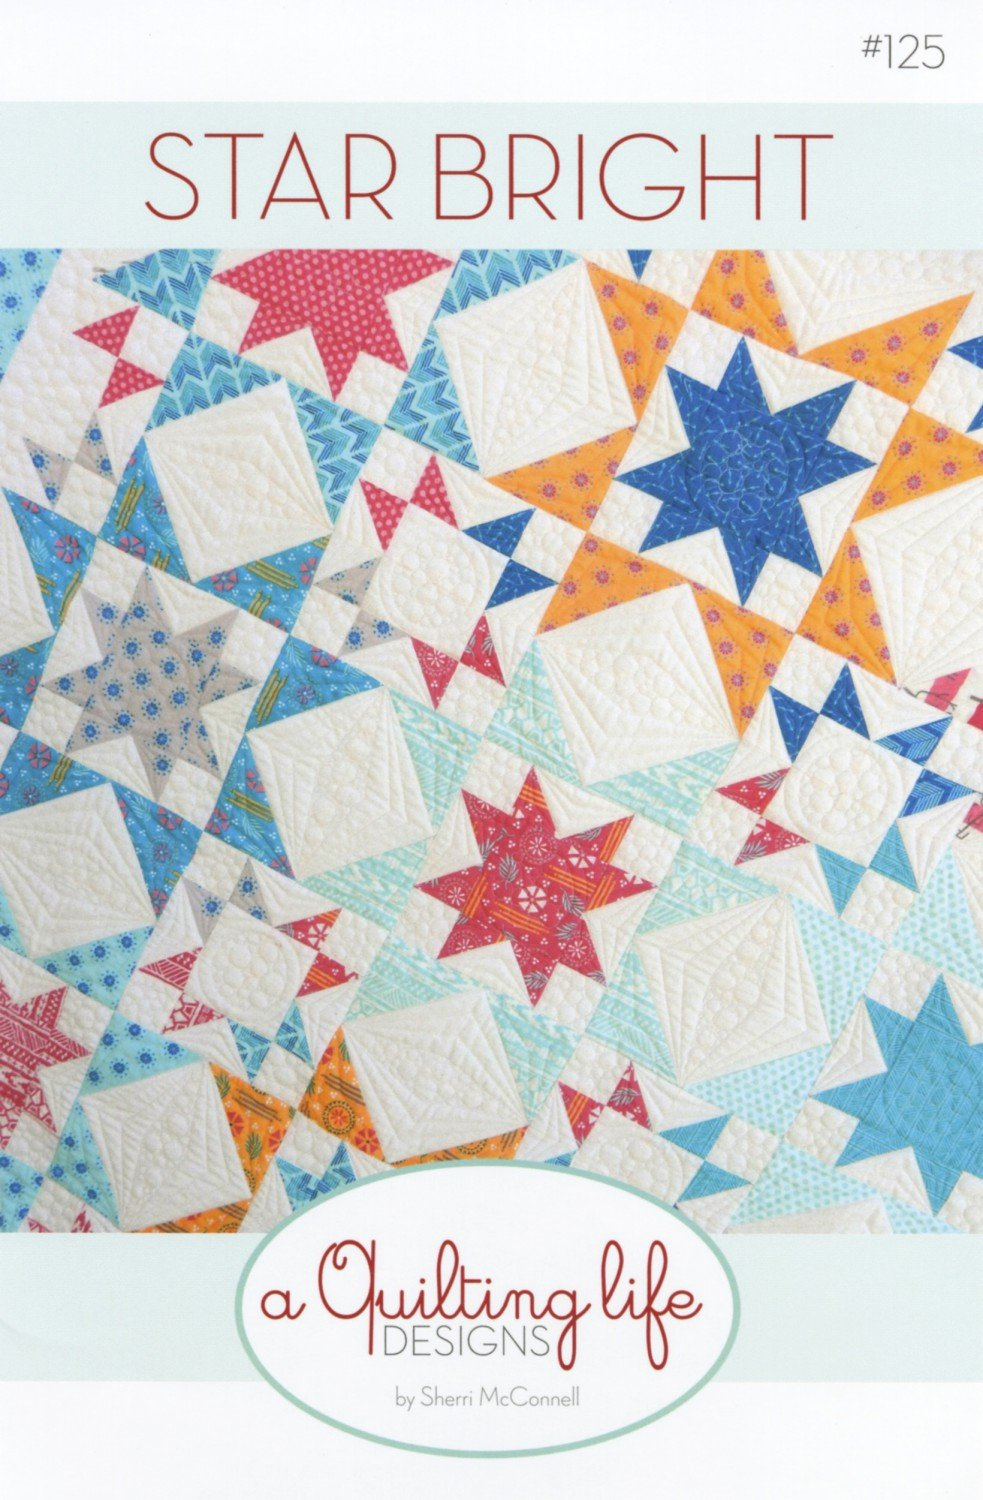 Star Bright by Sherri McConnell for A Quilting Life Designs QLD125